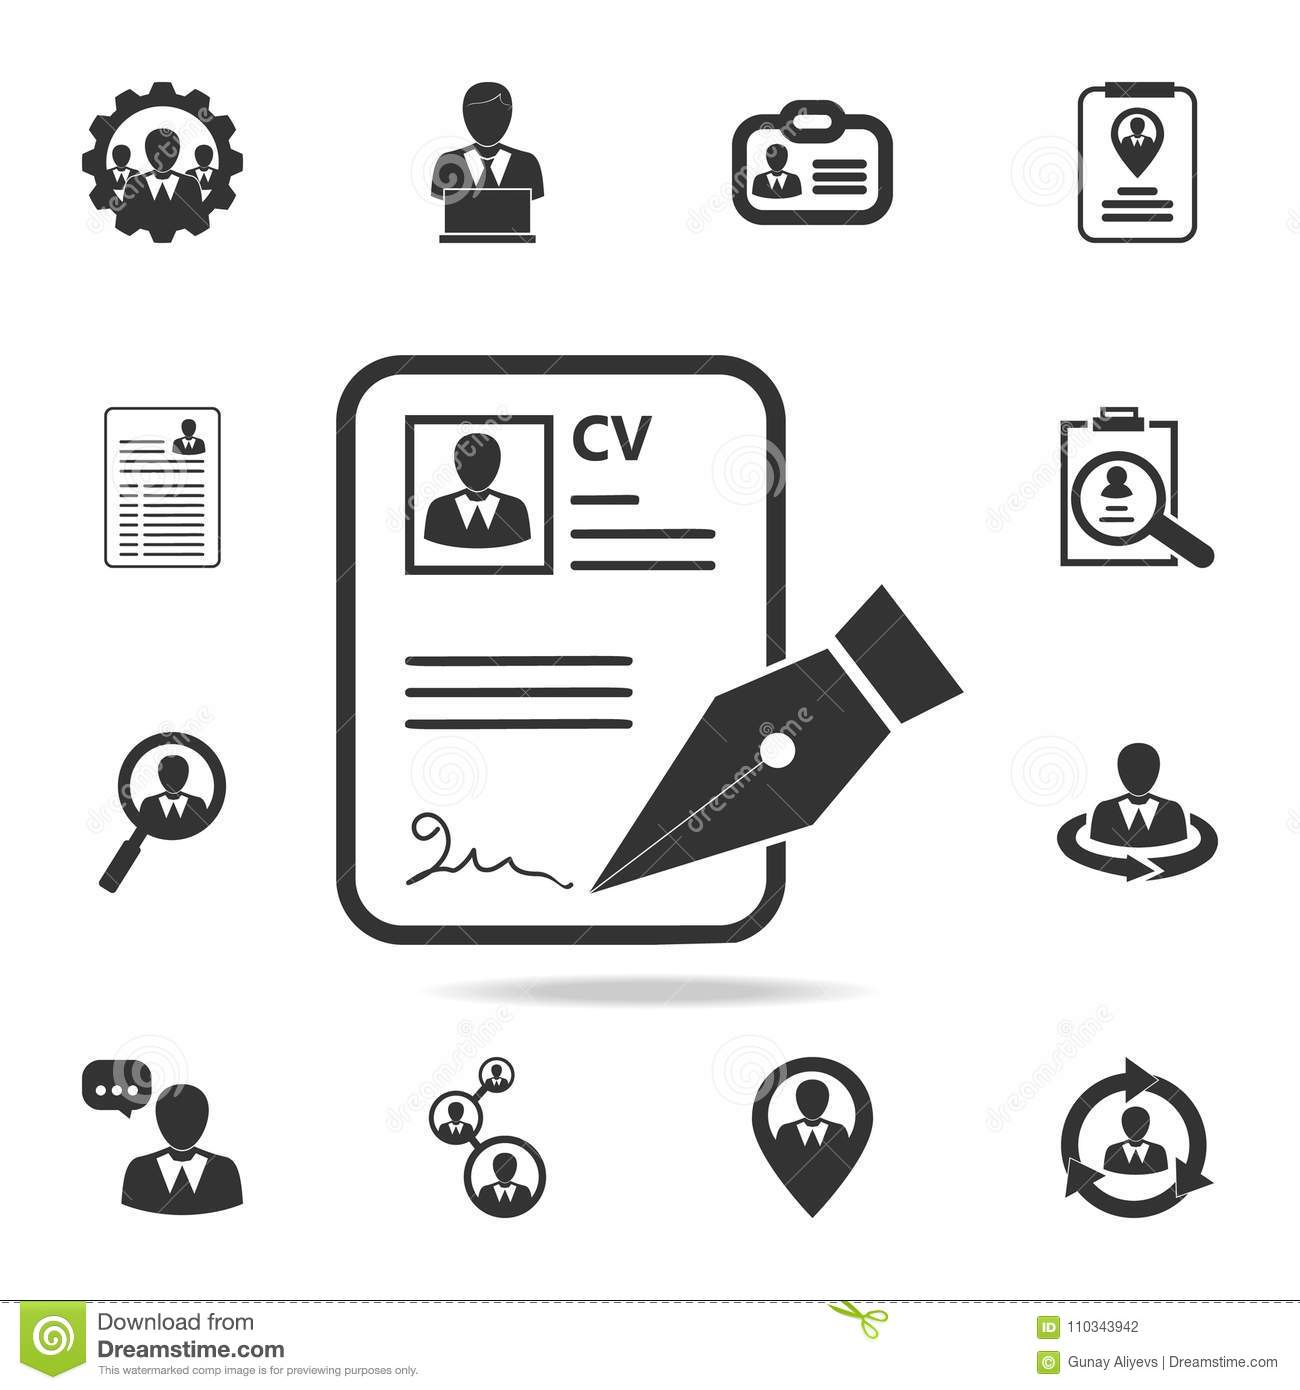 cv approvevent icon  set of human resources  head hunting icons  premium quality graphic design